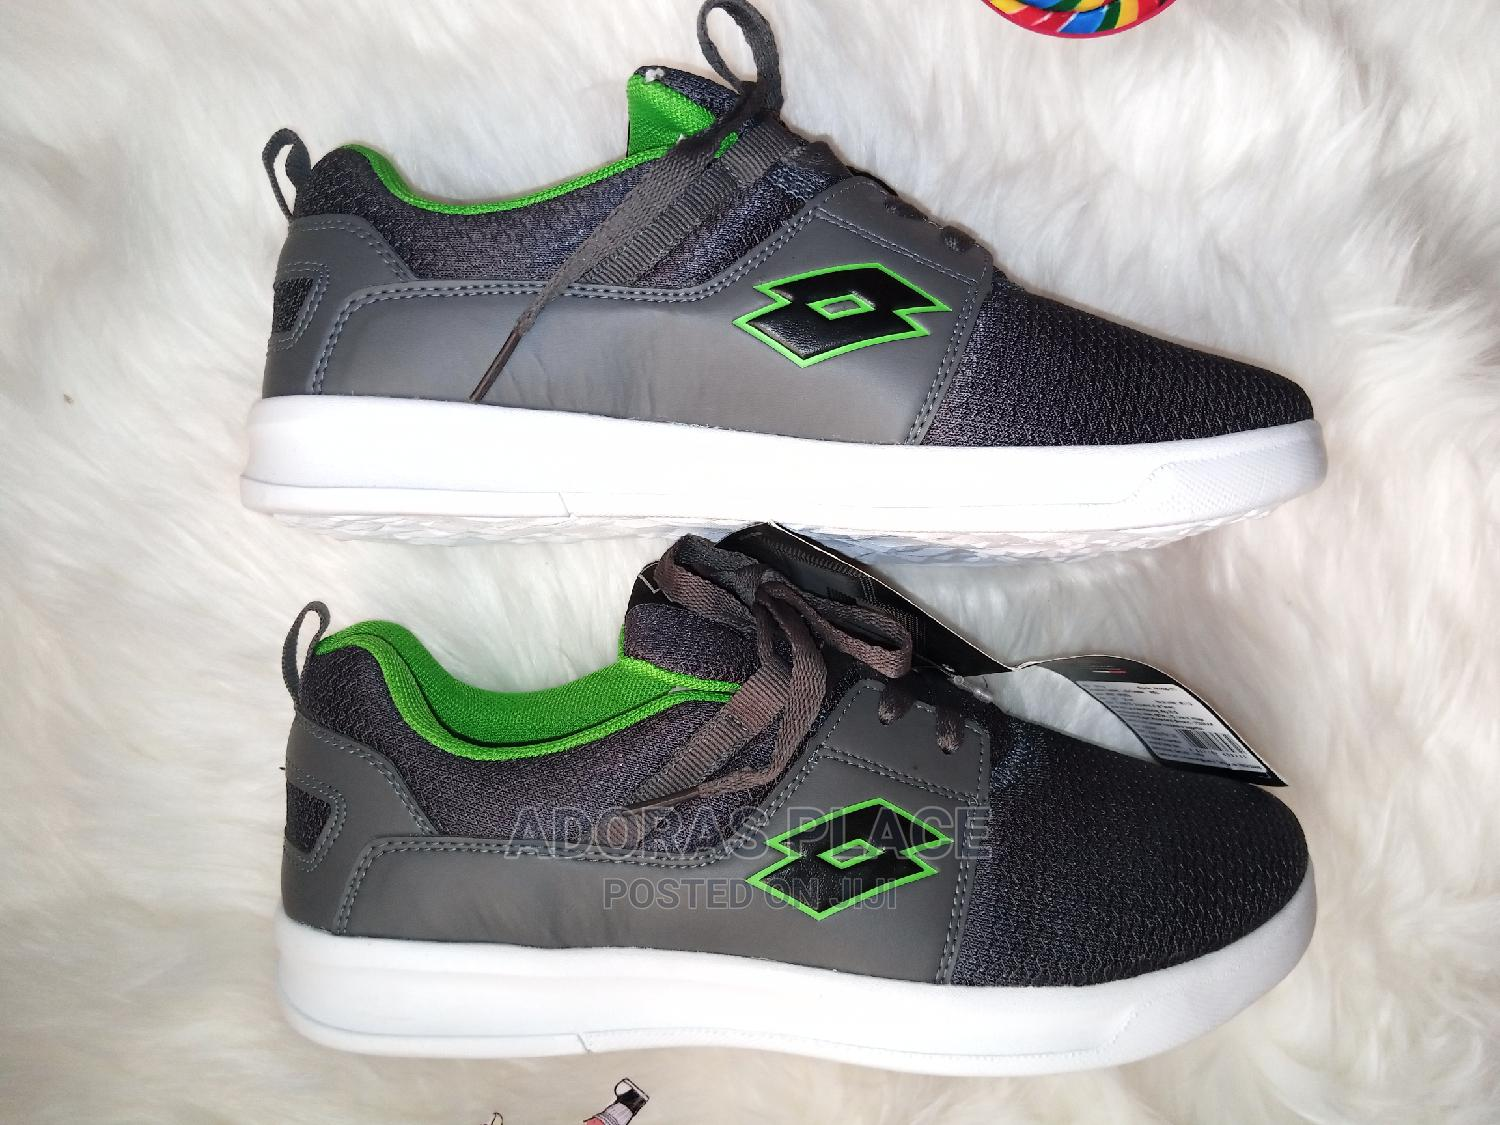 Unisex Sneakers | Shoes for sale in Ibadan, Oyo State, Nigeria